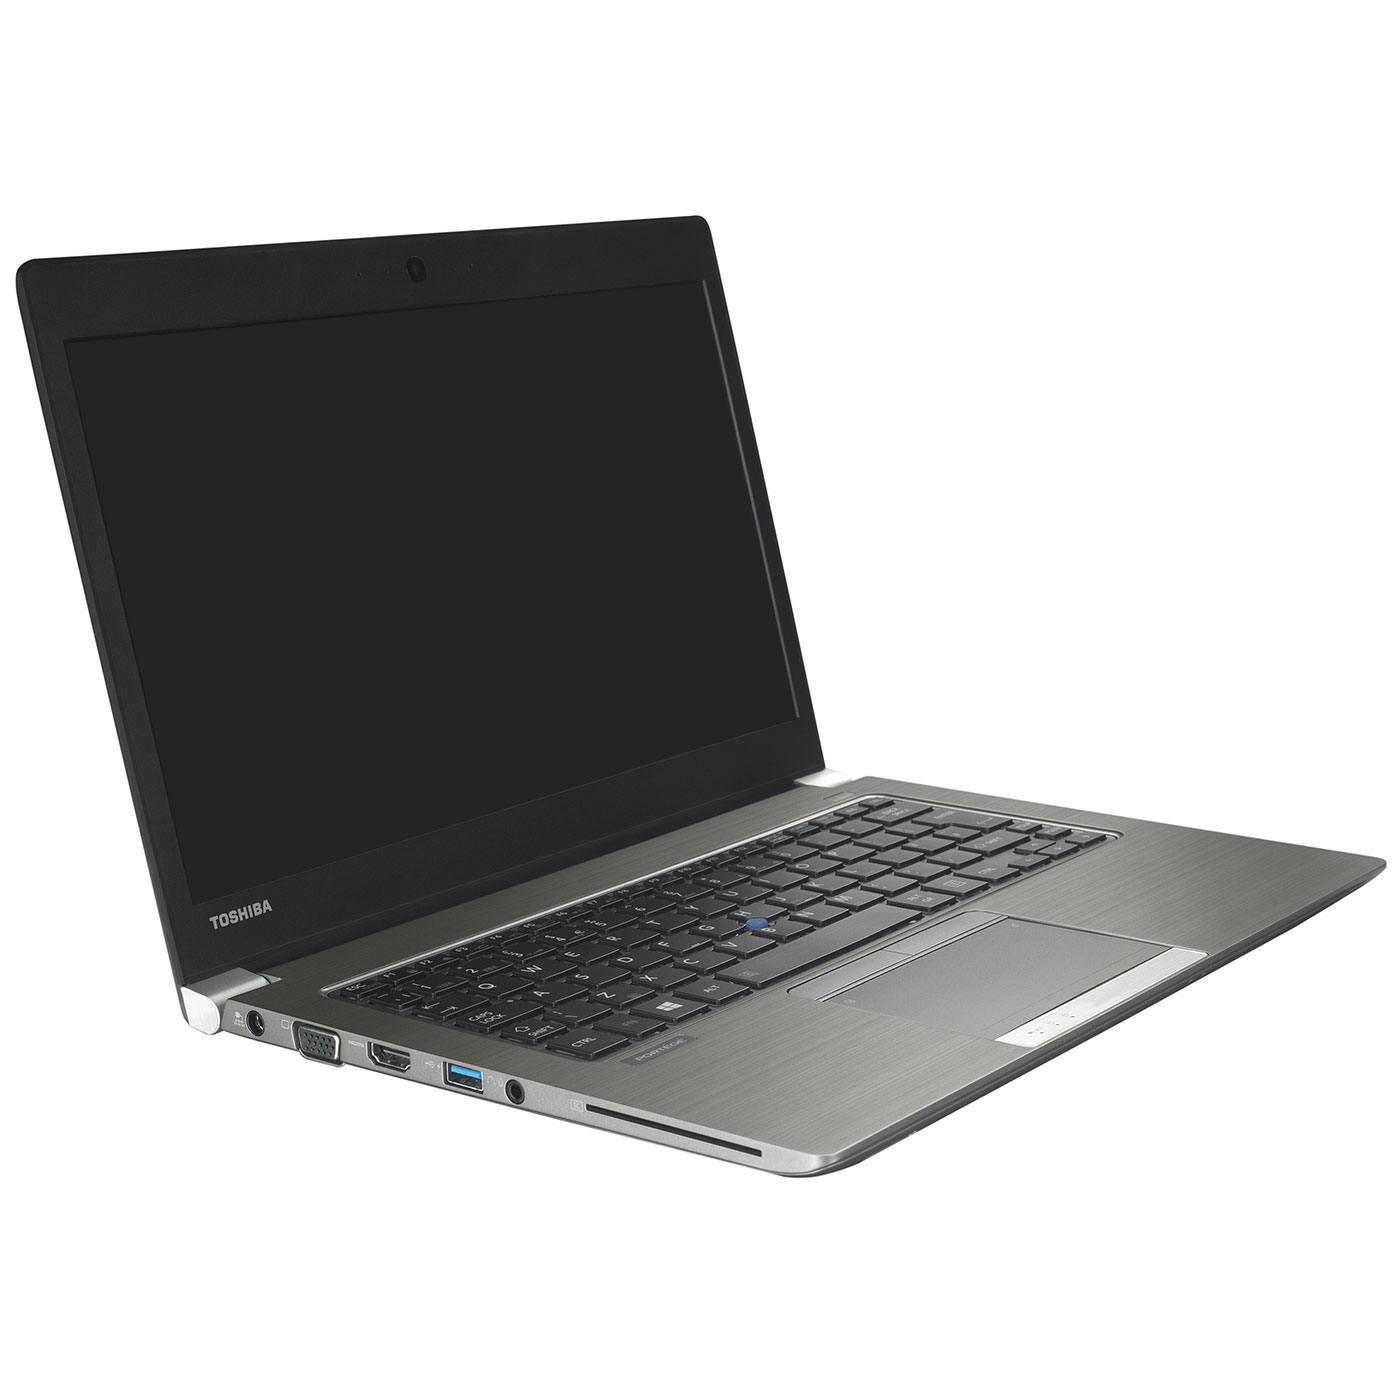 "PC portable Toshiba Portégé Z30-B-12E Intel Core i7-5500U 8 Go SSD 256 Go 13.3"" LED Full HD Wi-Fi AC/Bluetooth/4G Webcam Windows 7 Professionnel 64 bits + Windows 8.1 Pro 64 bits"